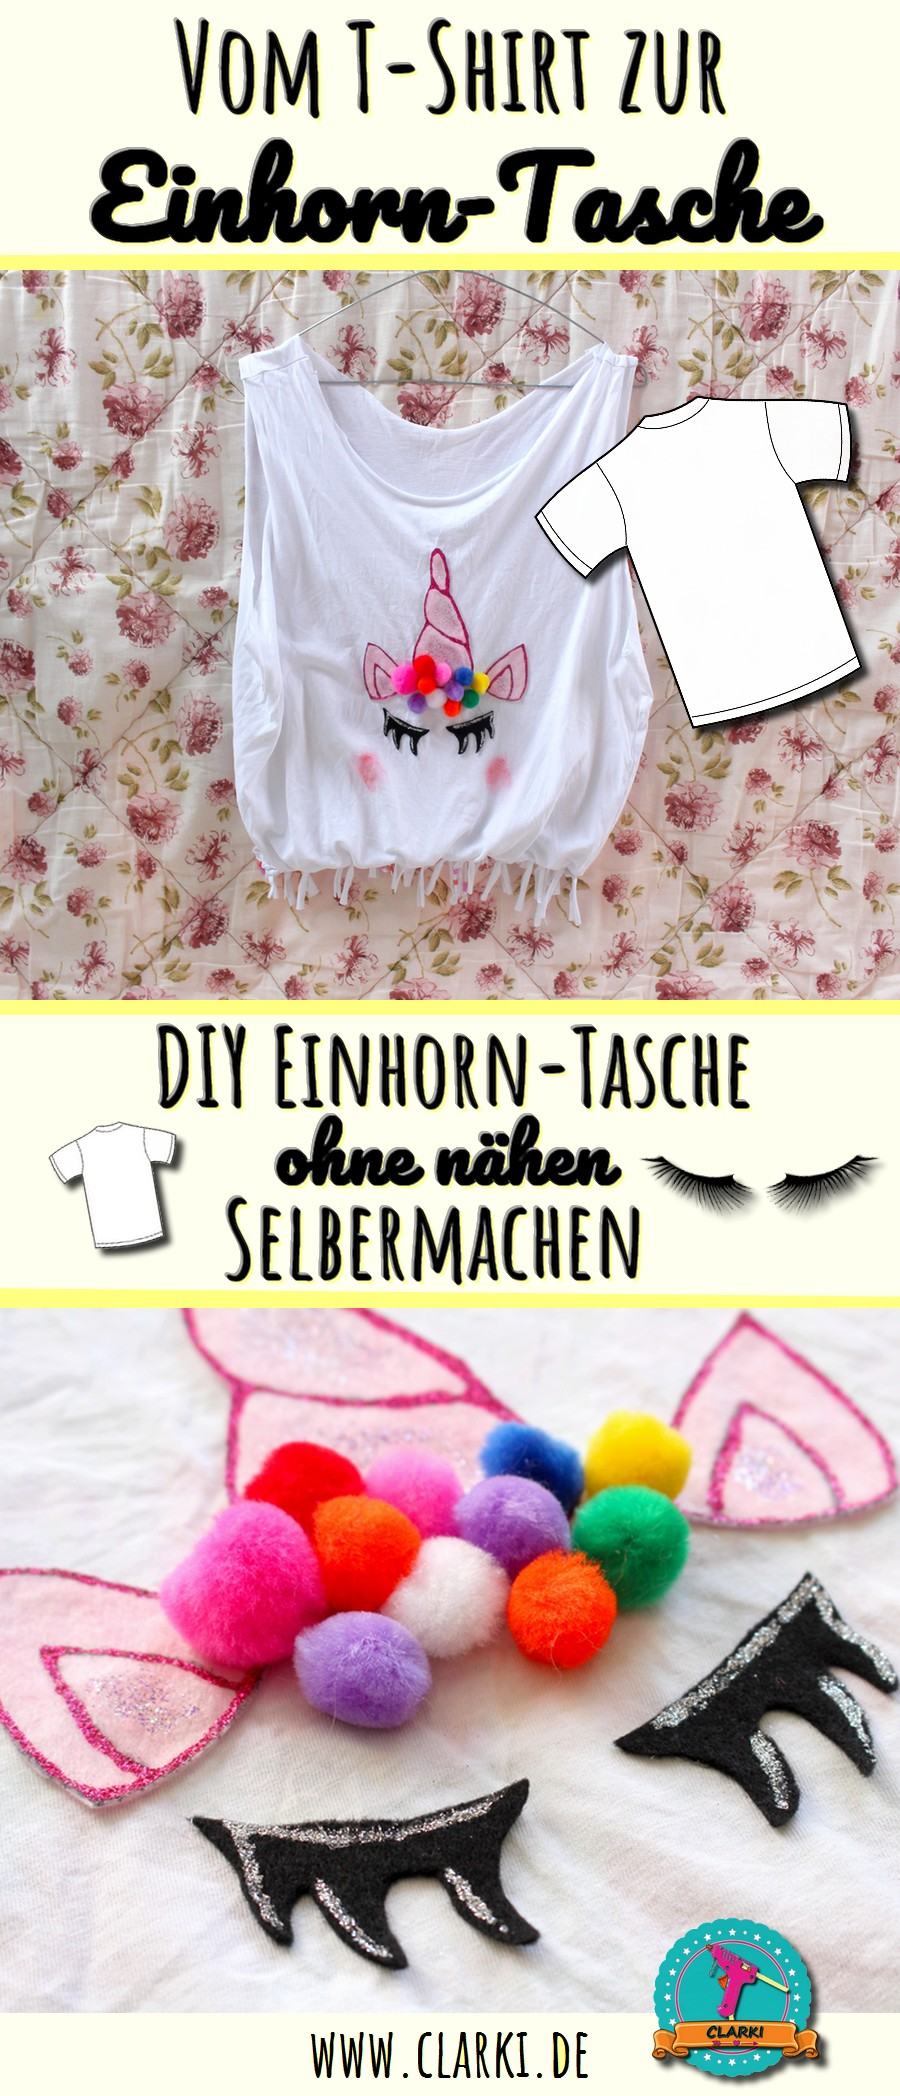 diy einhorn tasche ohne n hen aus t shirt zum selbermachen clarki. Black Bedroom Furniture Sets. Home Design Ideas